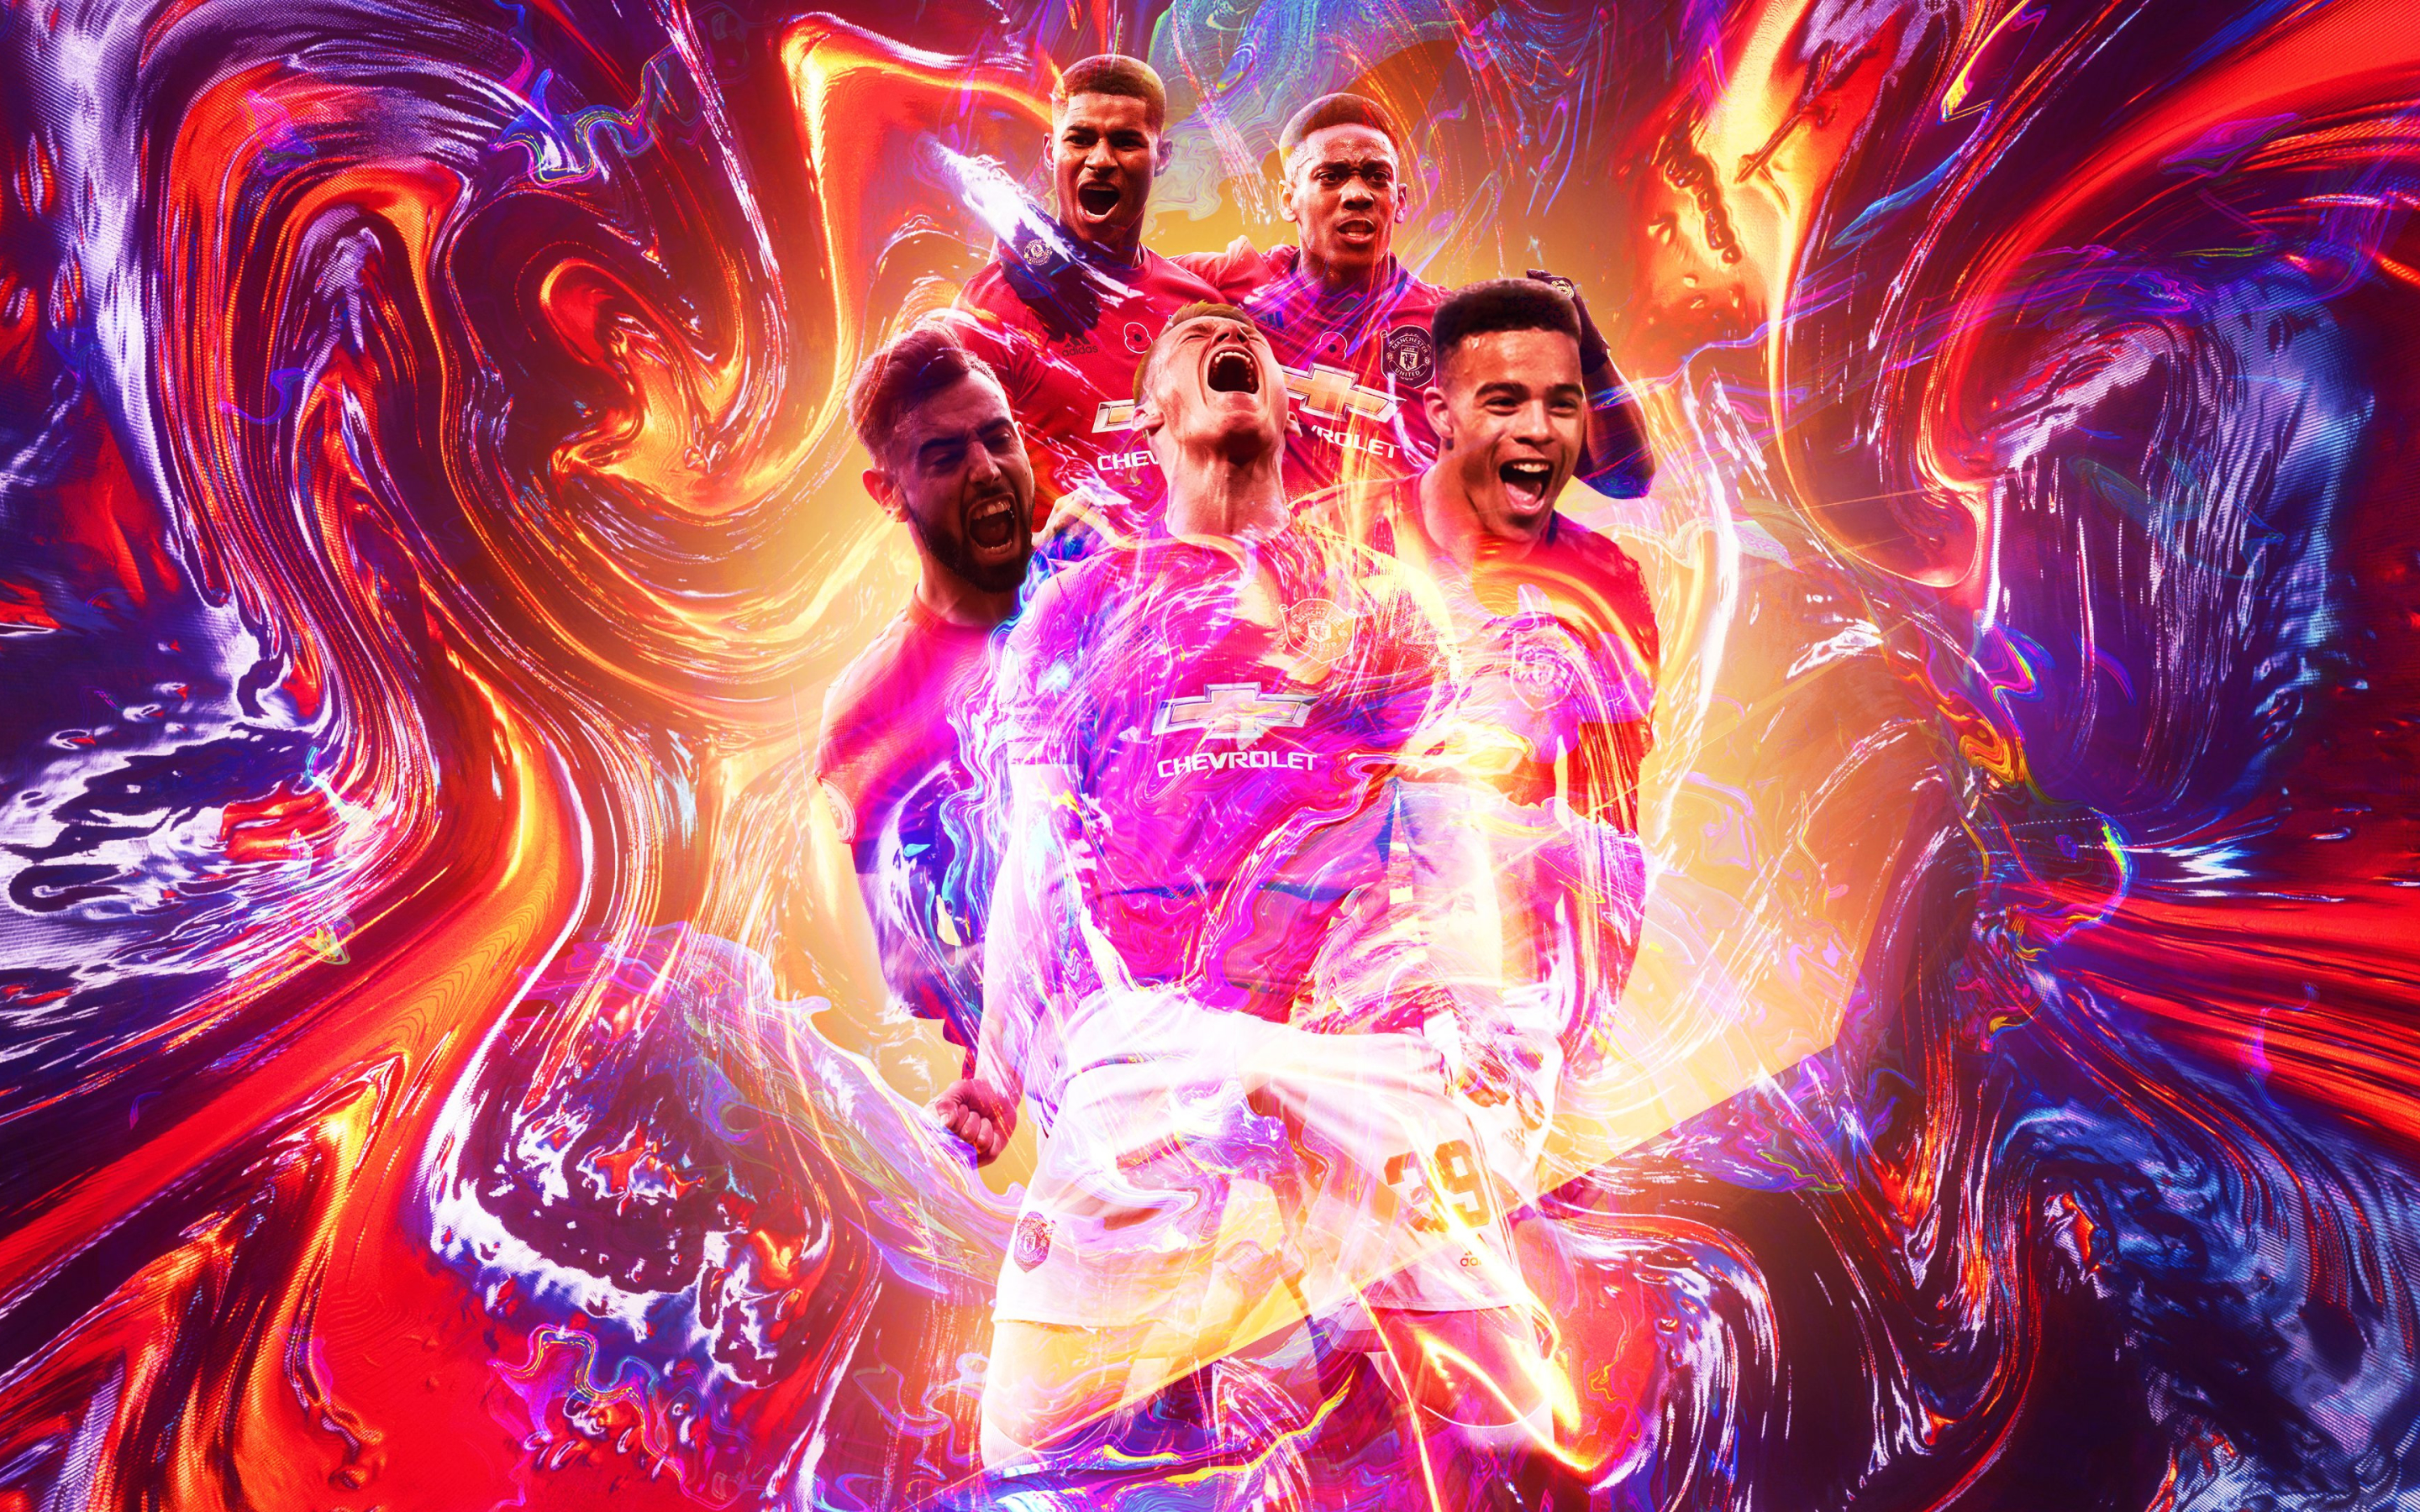 2880x1800 Manchester United F C Poster Macbook Pro Retina Wallpaper Hd Sports 4k Wallpapers Images Photos And Background Wallpapers Den